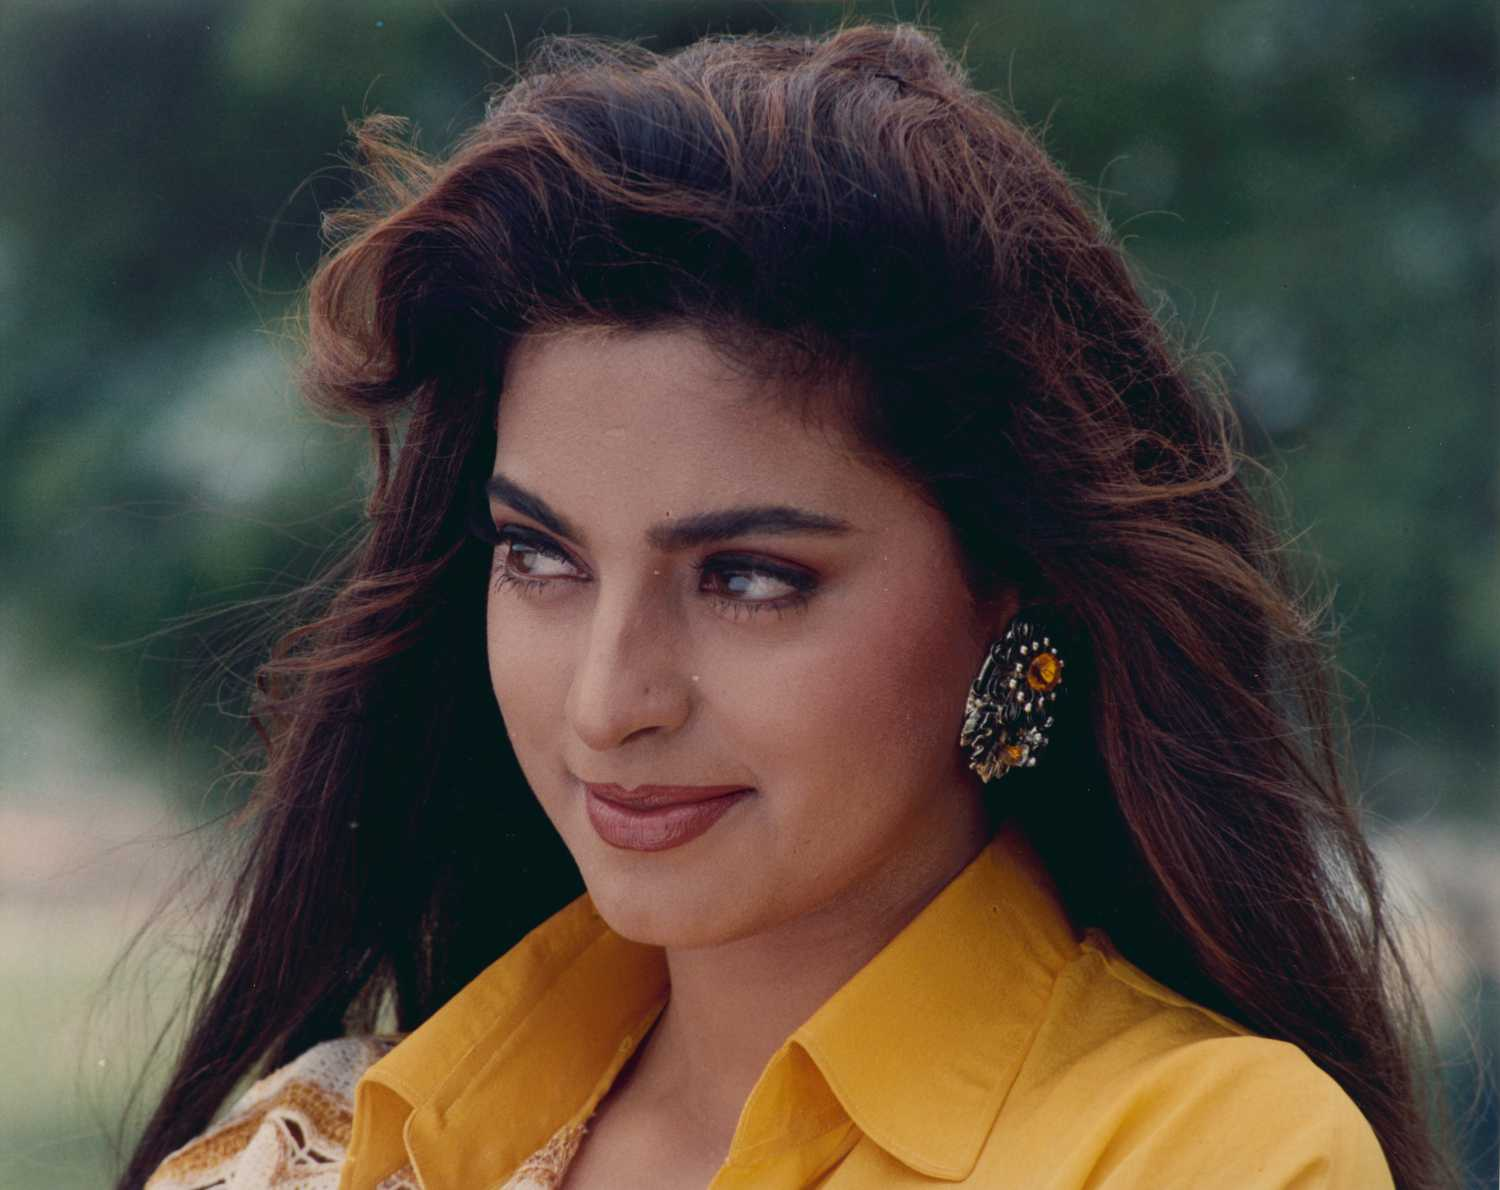 actress, bollywood, earrings, juhi chawla